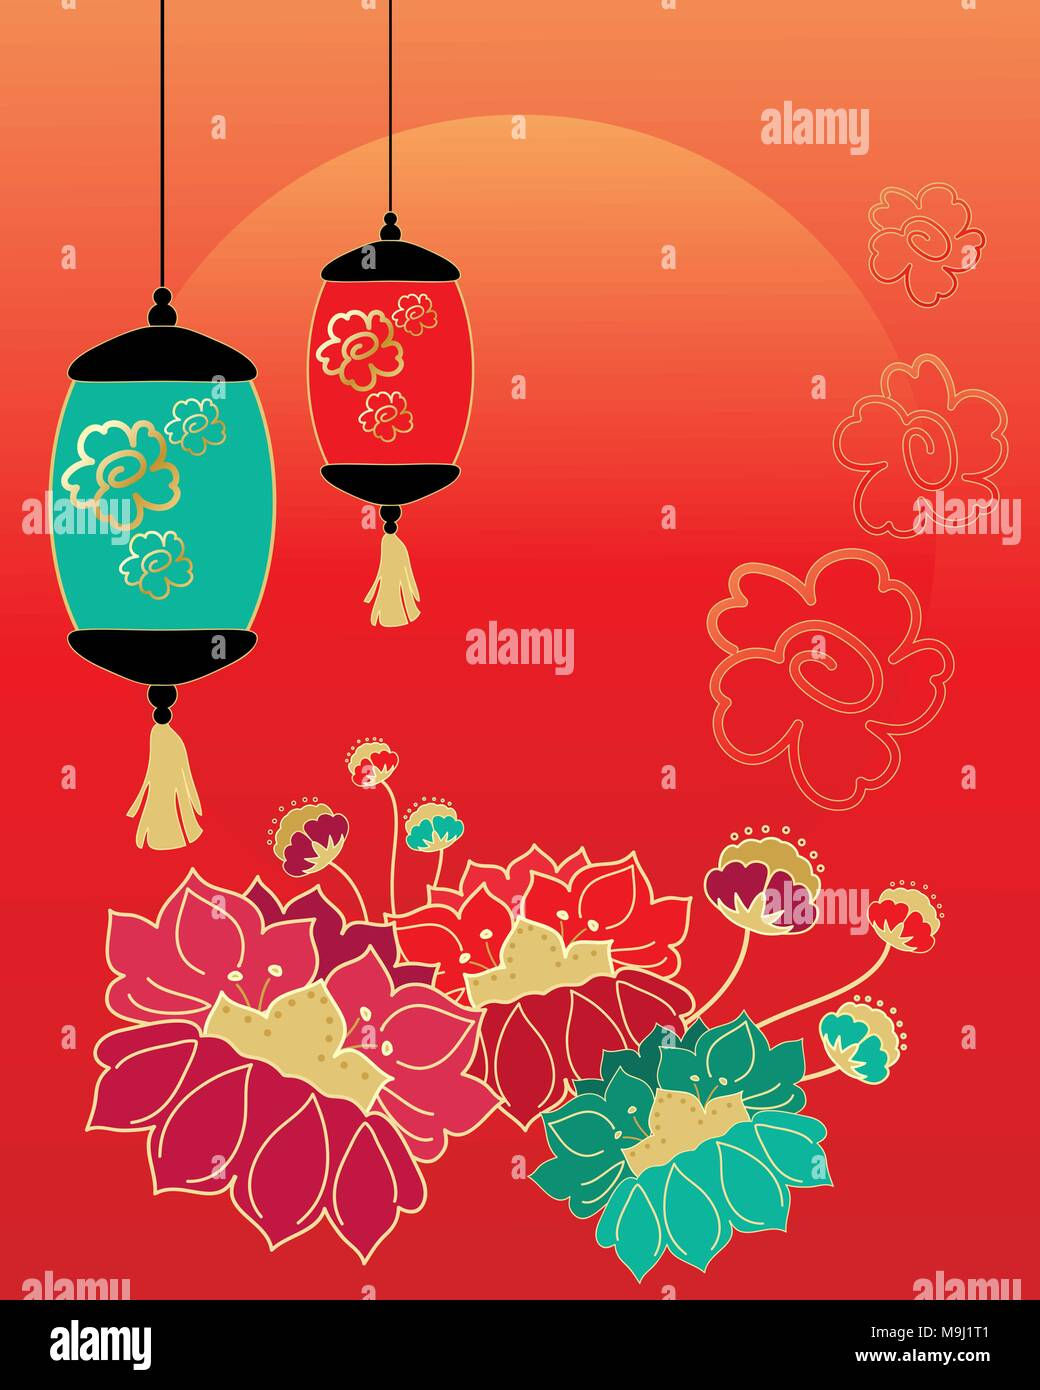 an illustration of a chinese new year celebration greeting card design with stylized flowers lanterns and a rising sun stock vector image art alamy https www alamy com an illustration of a chinese new year celebration greeting card design with stylized flowers lanterns and a rising sun image178032177 html